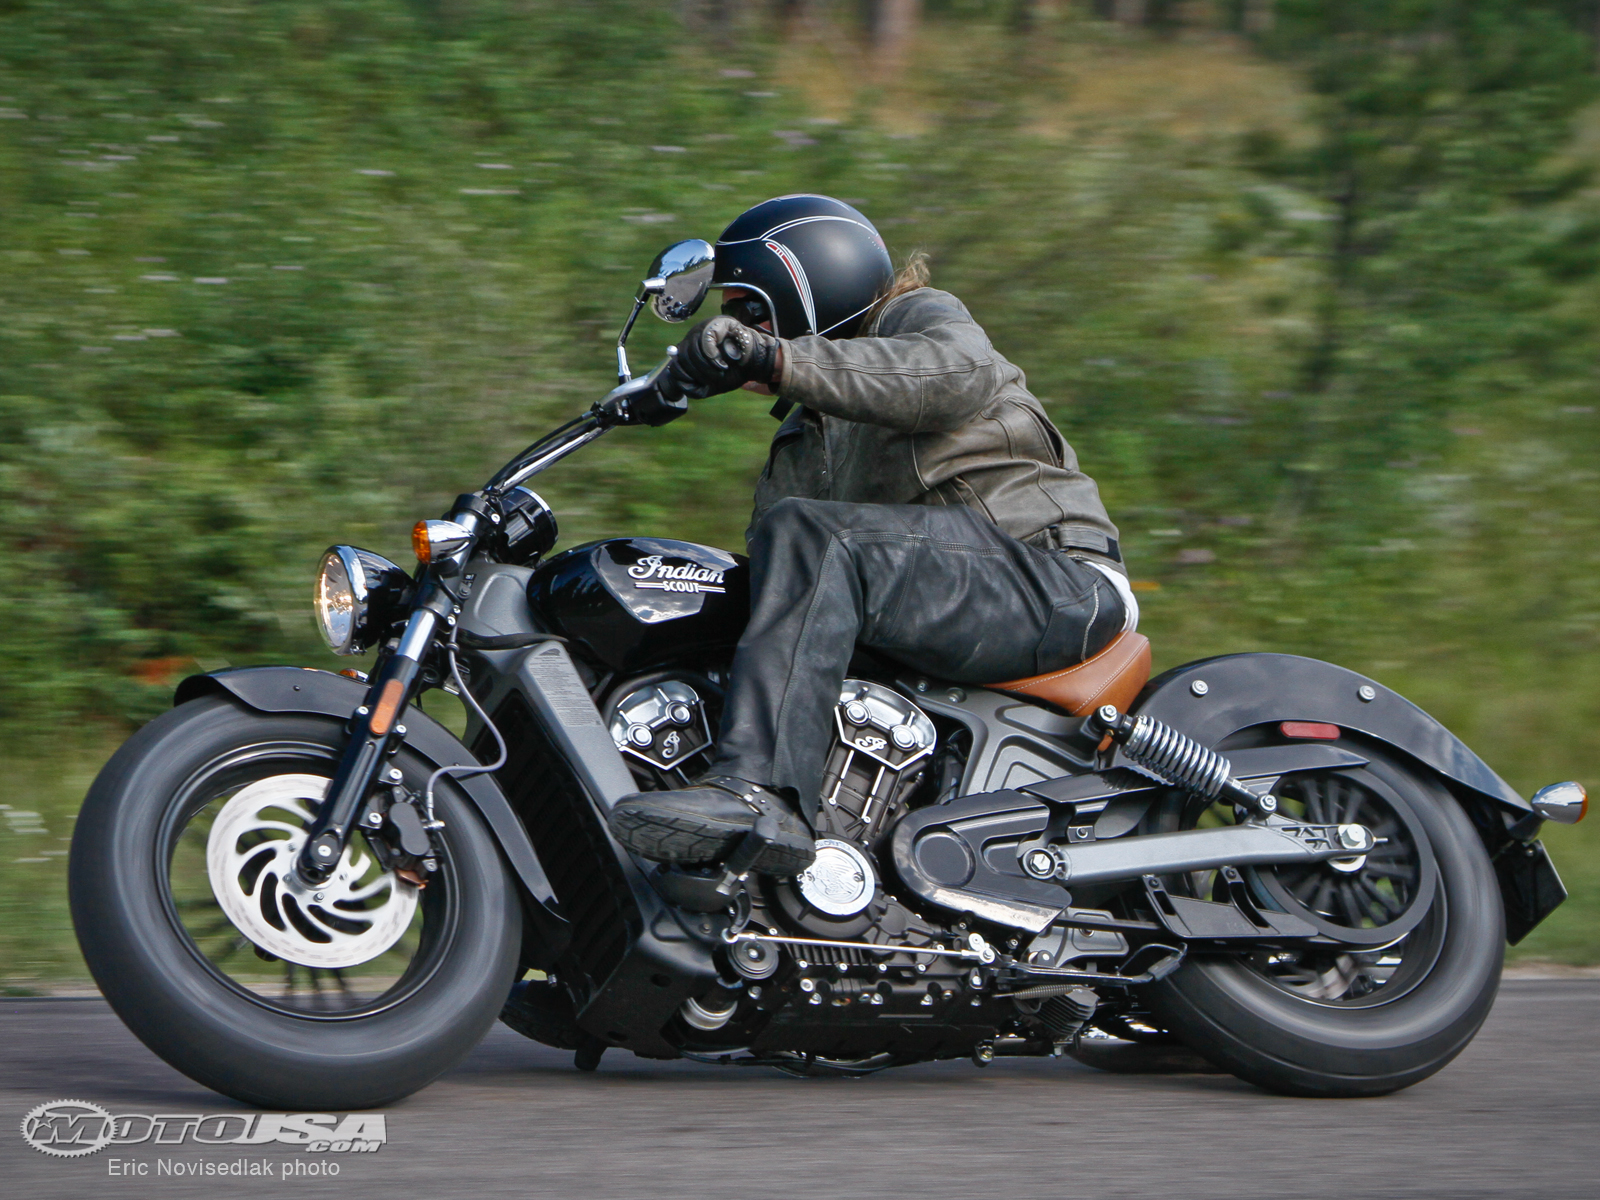 Мотоцикл Indian Scout 2015